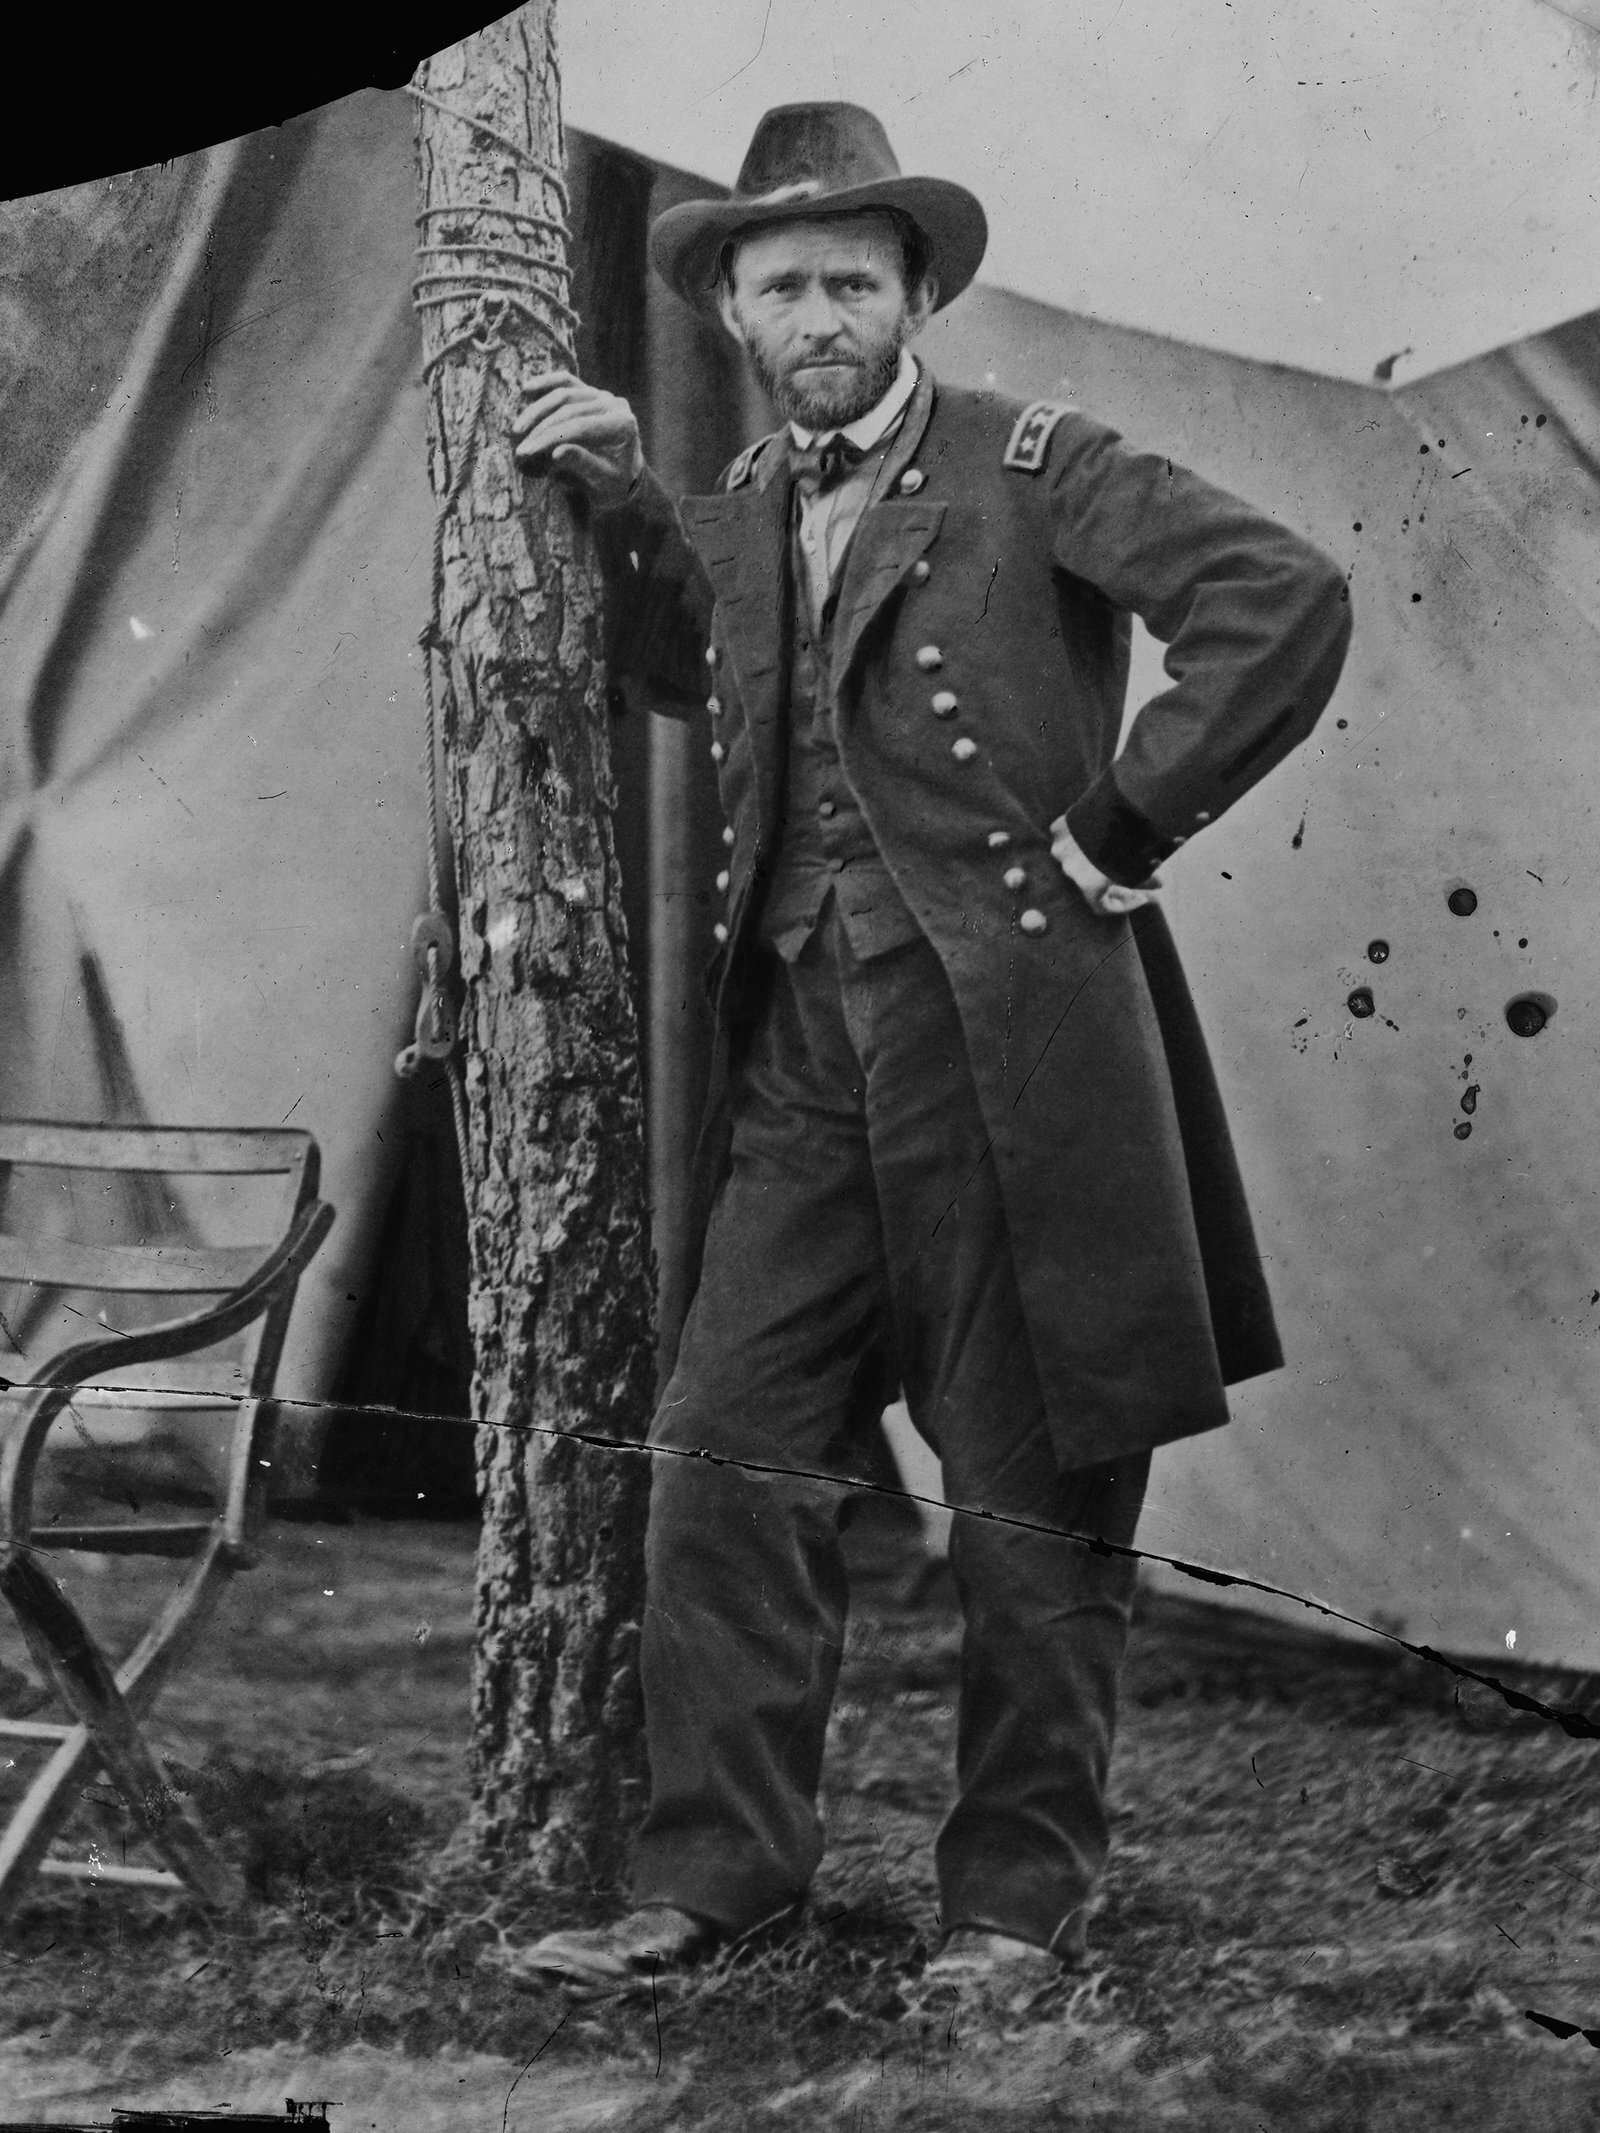 PRO-PARK PRESIDENT ULYSSES S. GRANT MADE SOME OF AMERICA GREAT.